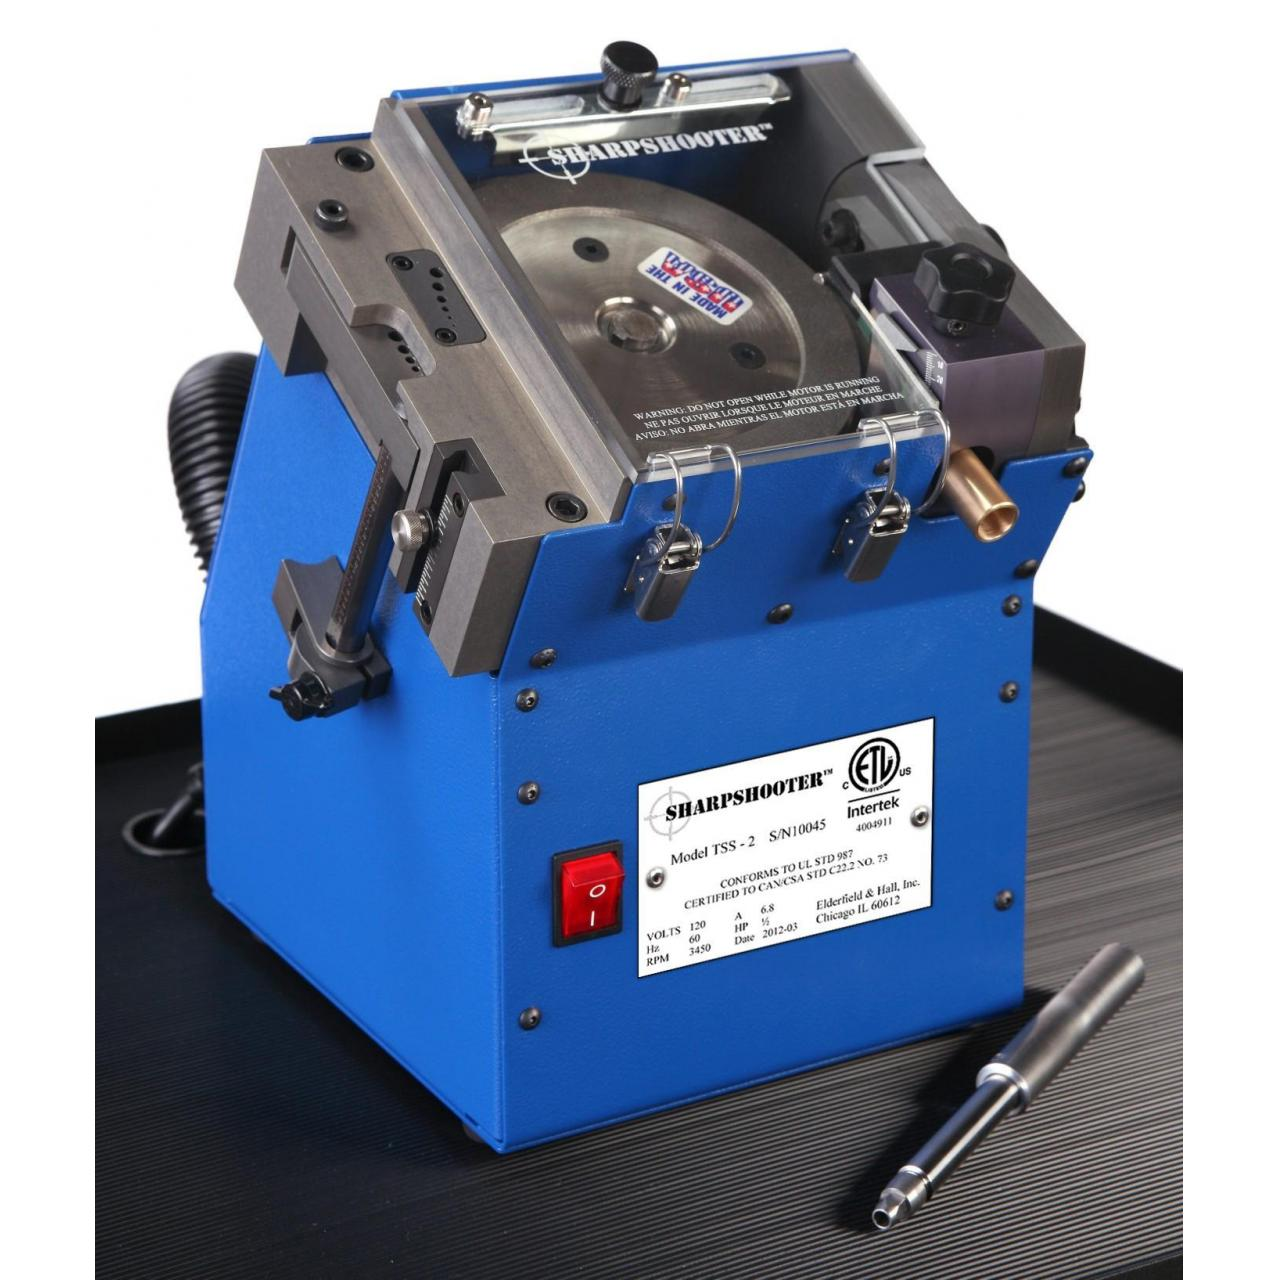 The Sharpshooter Tungsten Electrode Grinder